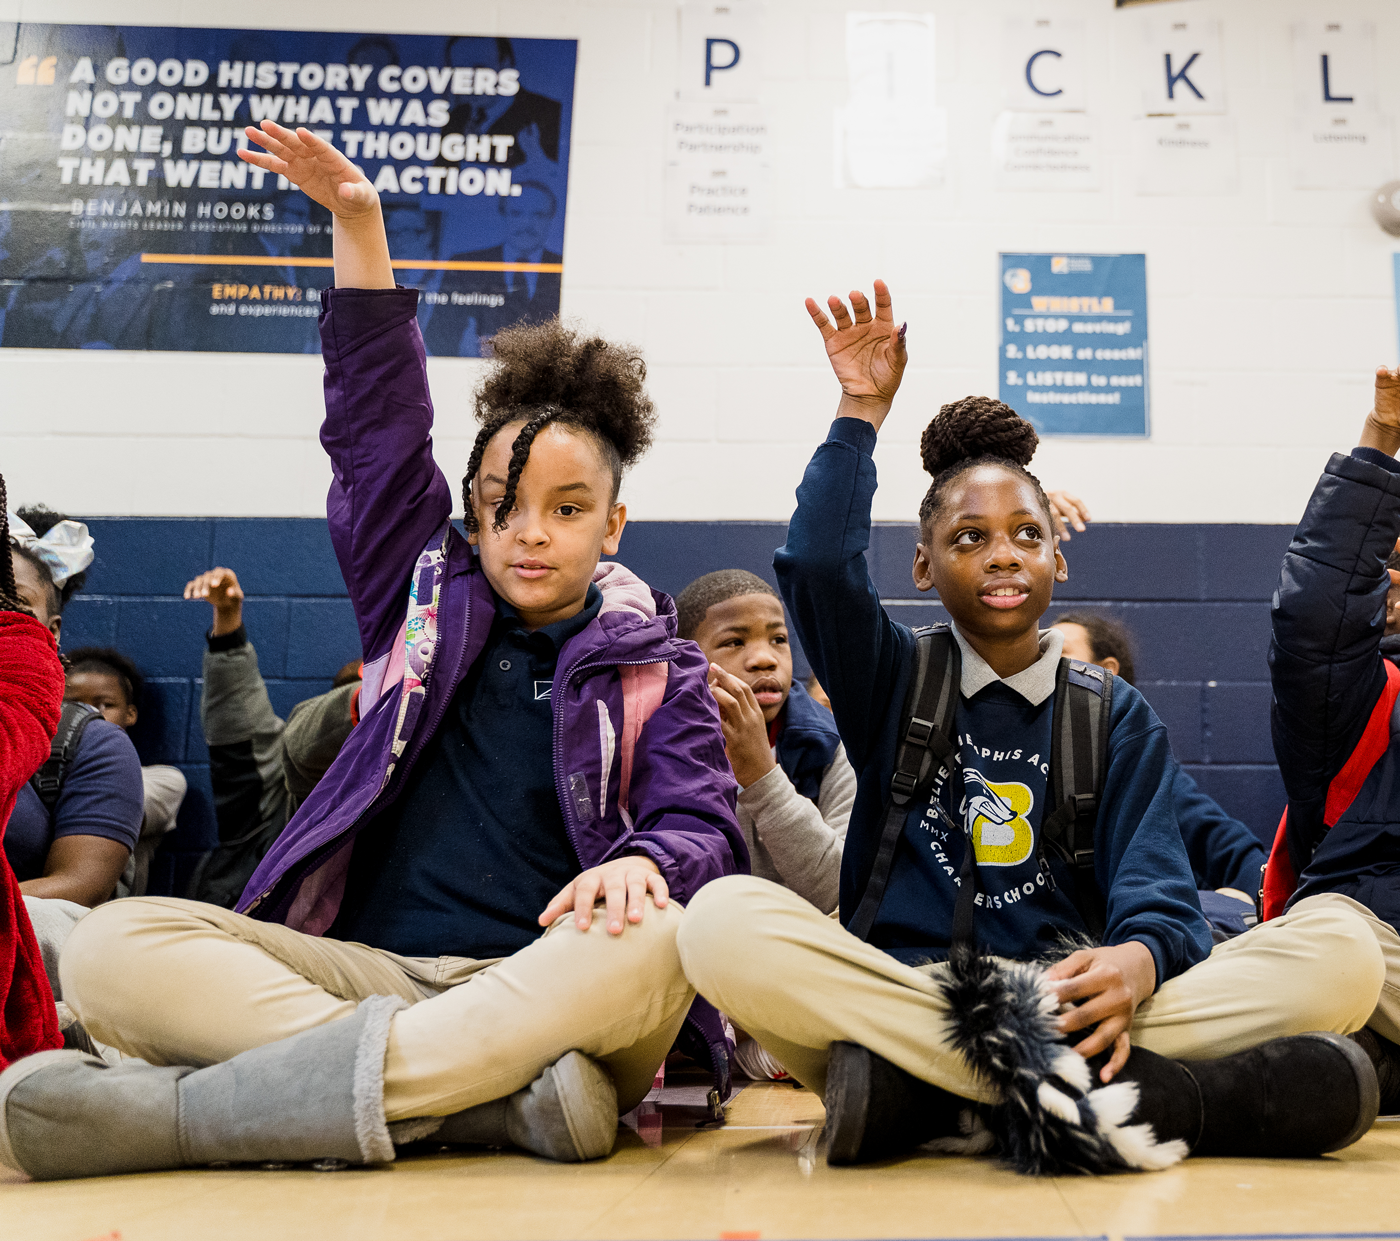 Students raising hands during school wide event.